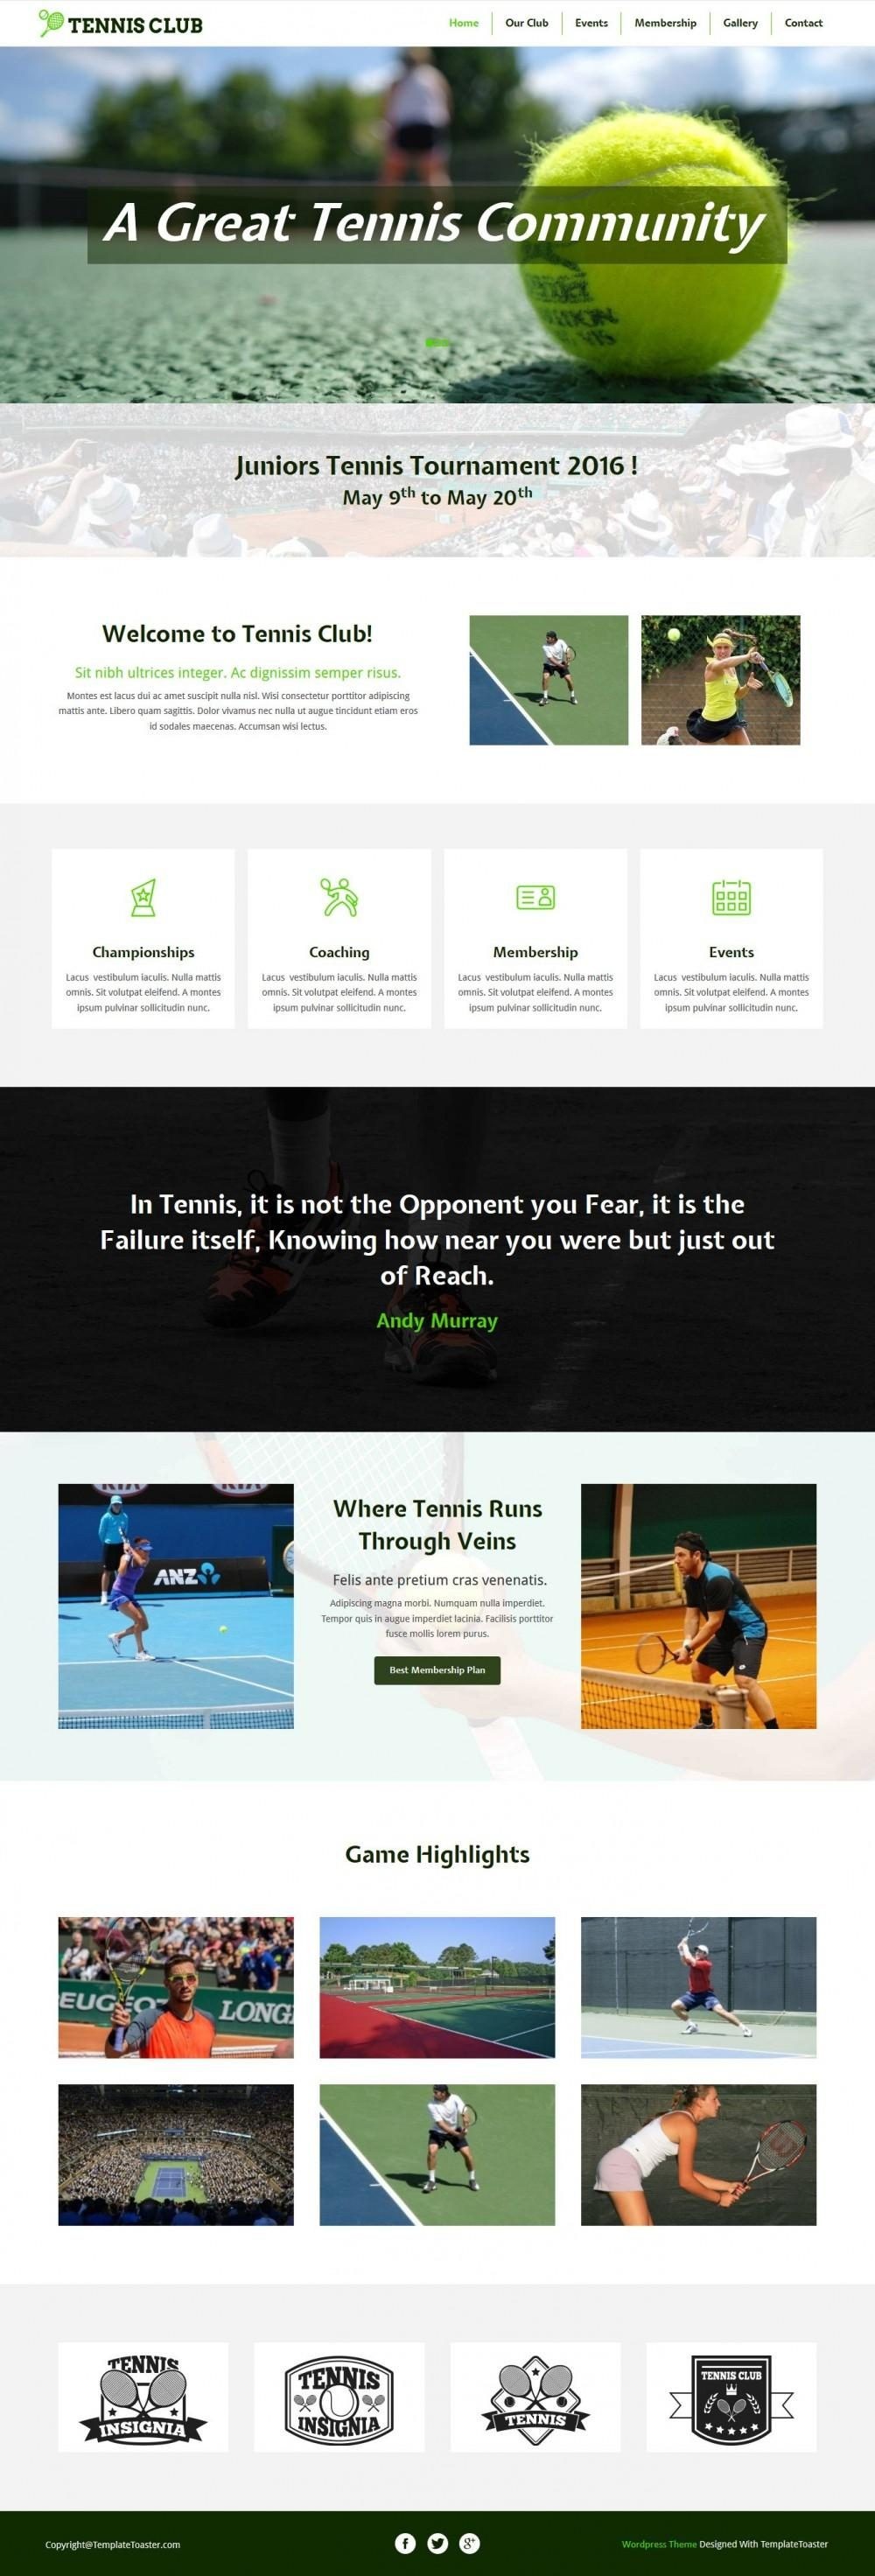 Tennis Club Drupal Theme